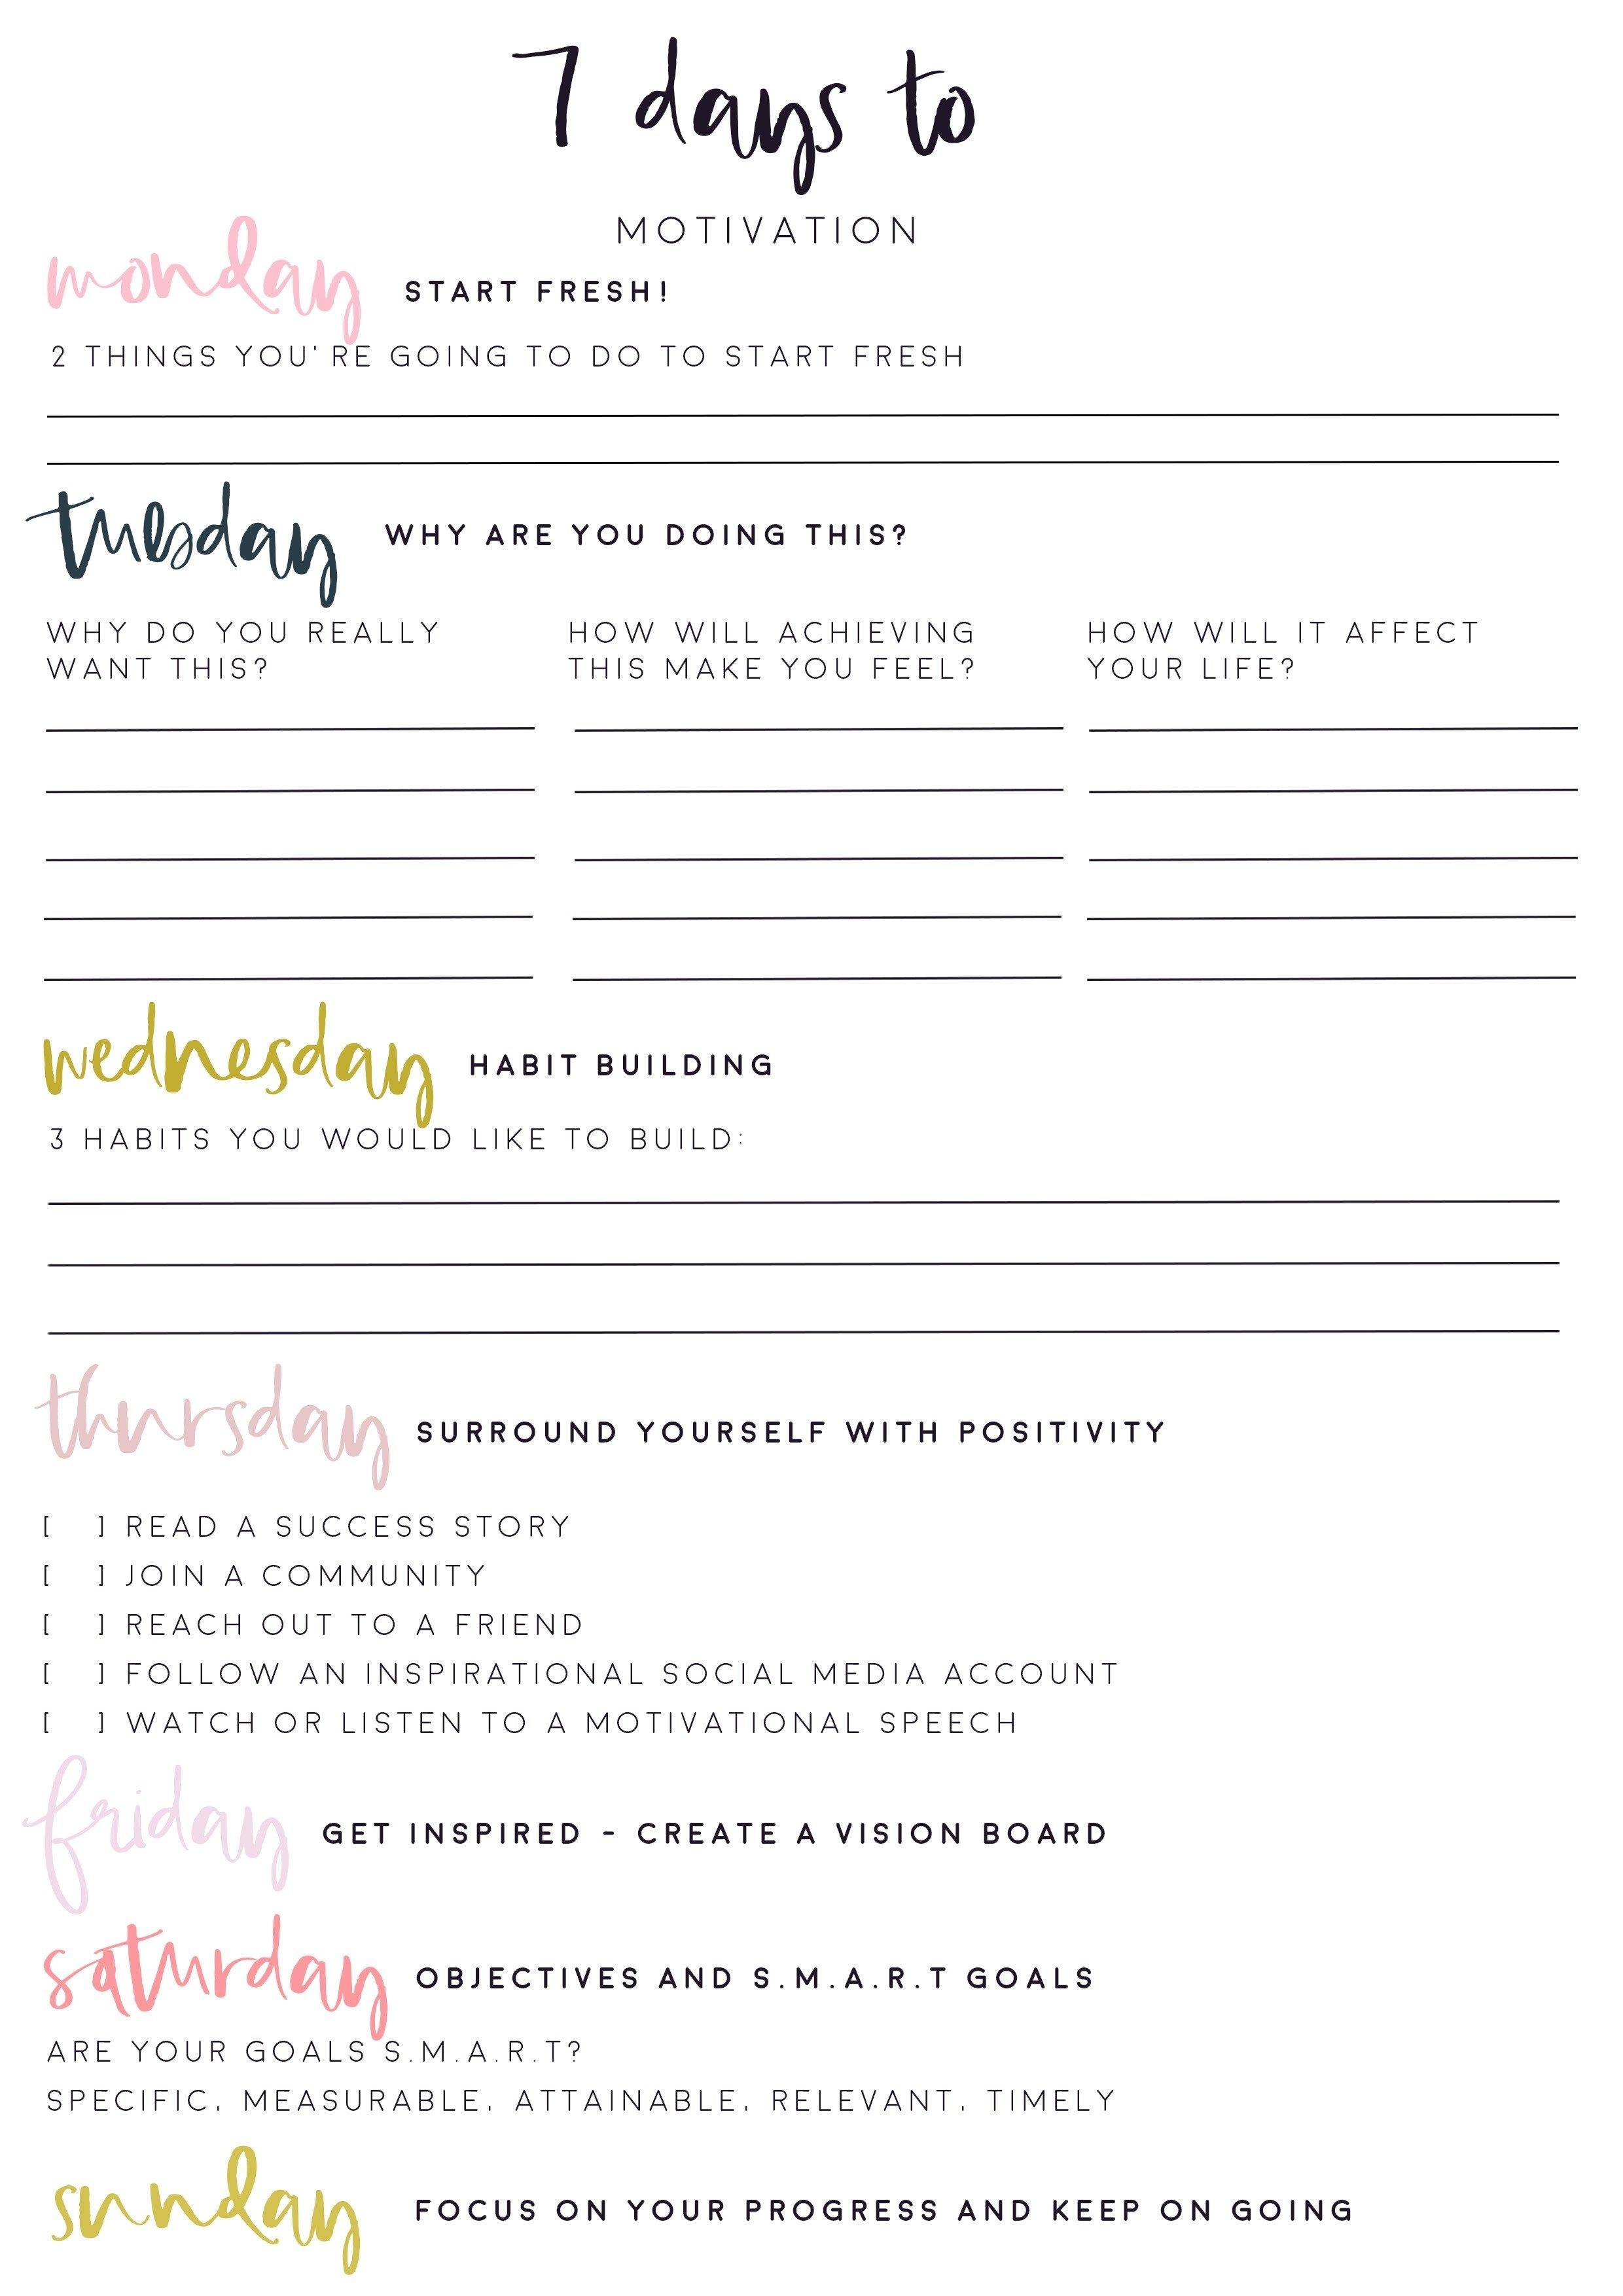 7 Days To Get Motivated! Free Motivational Worksheet Printable - Free Printable Fitness Worksheets